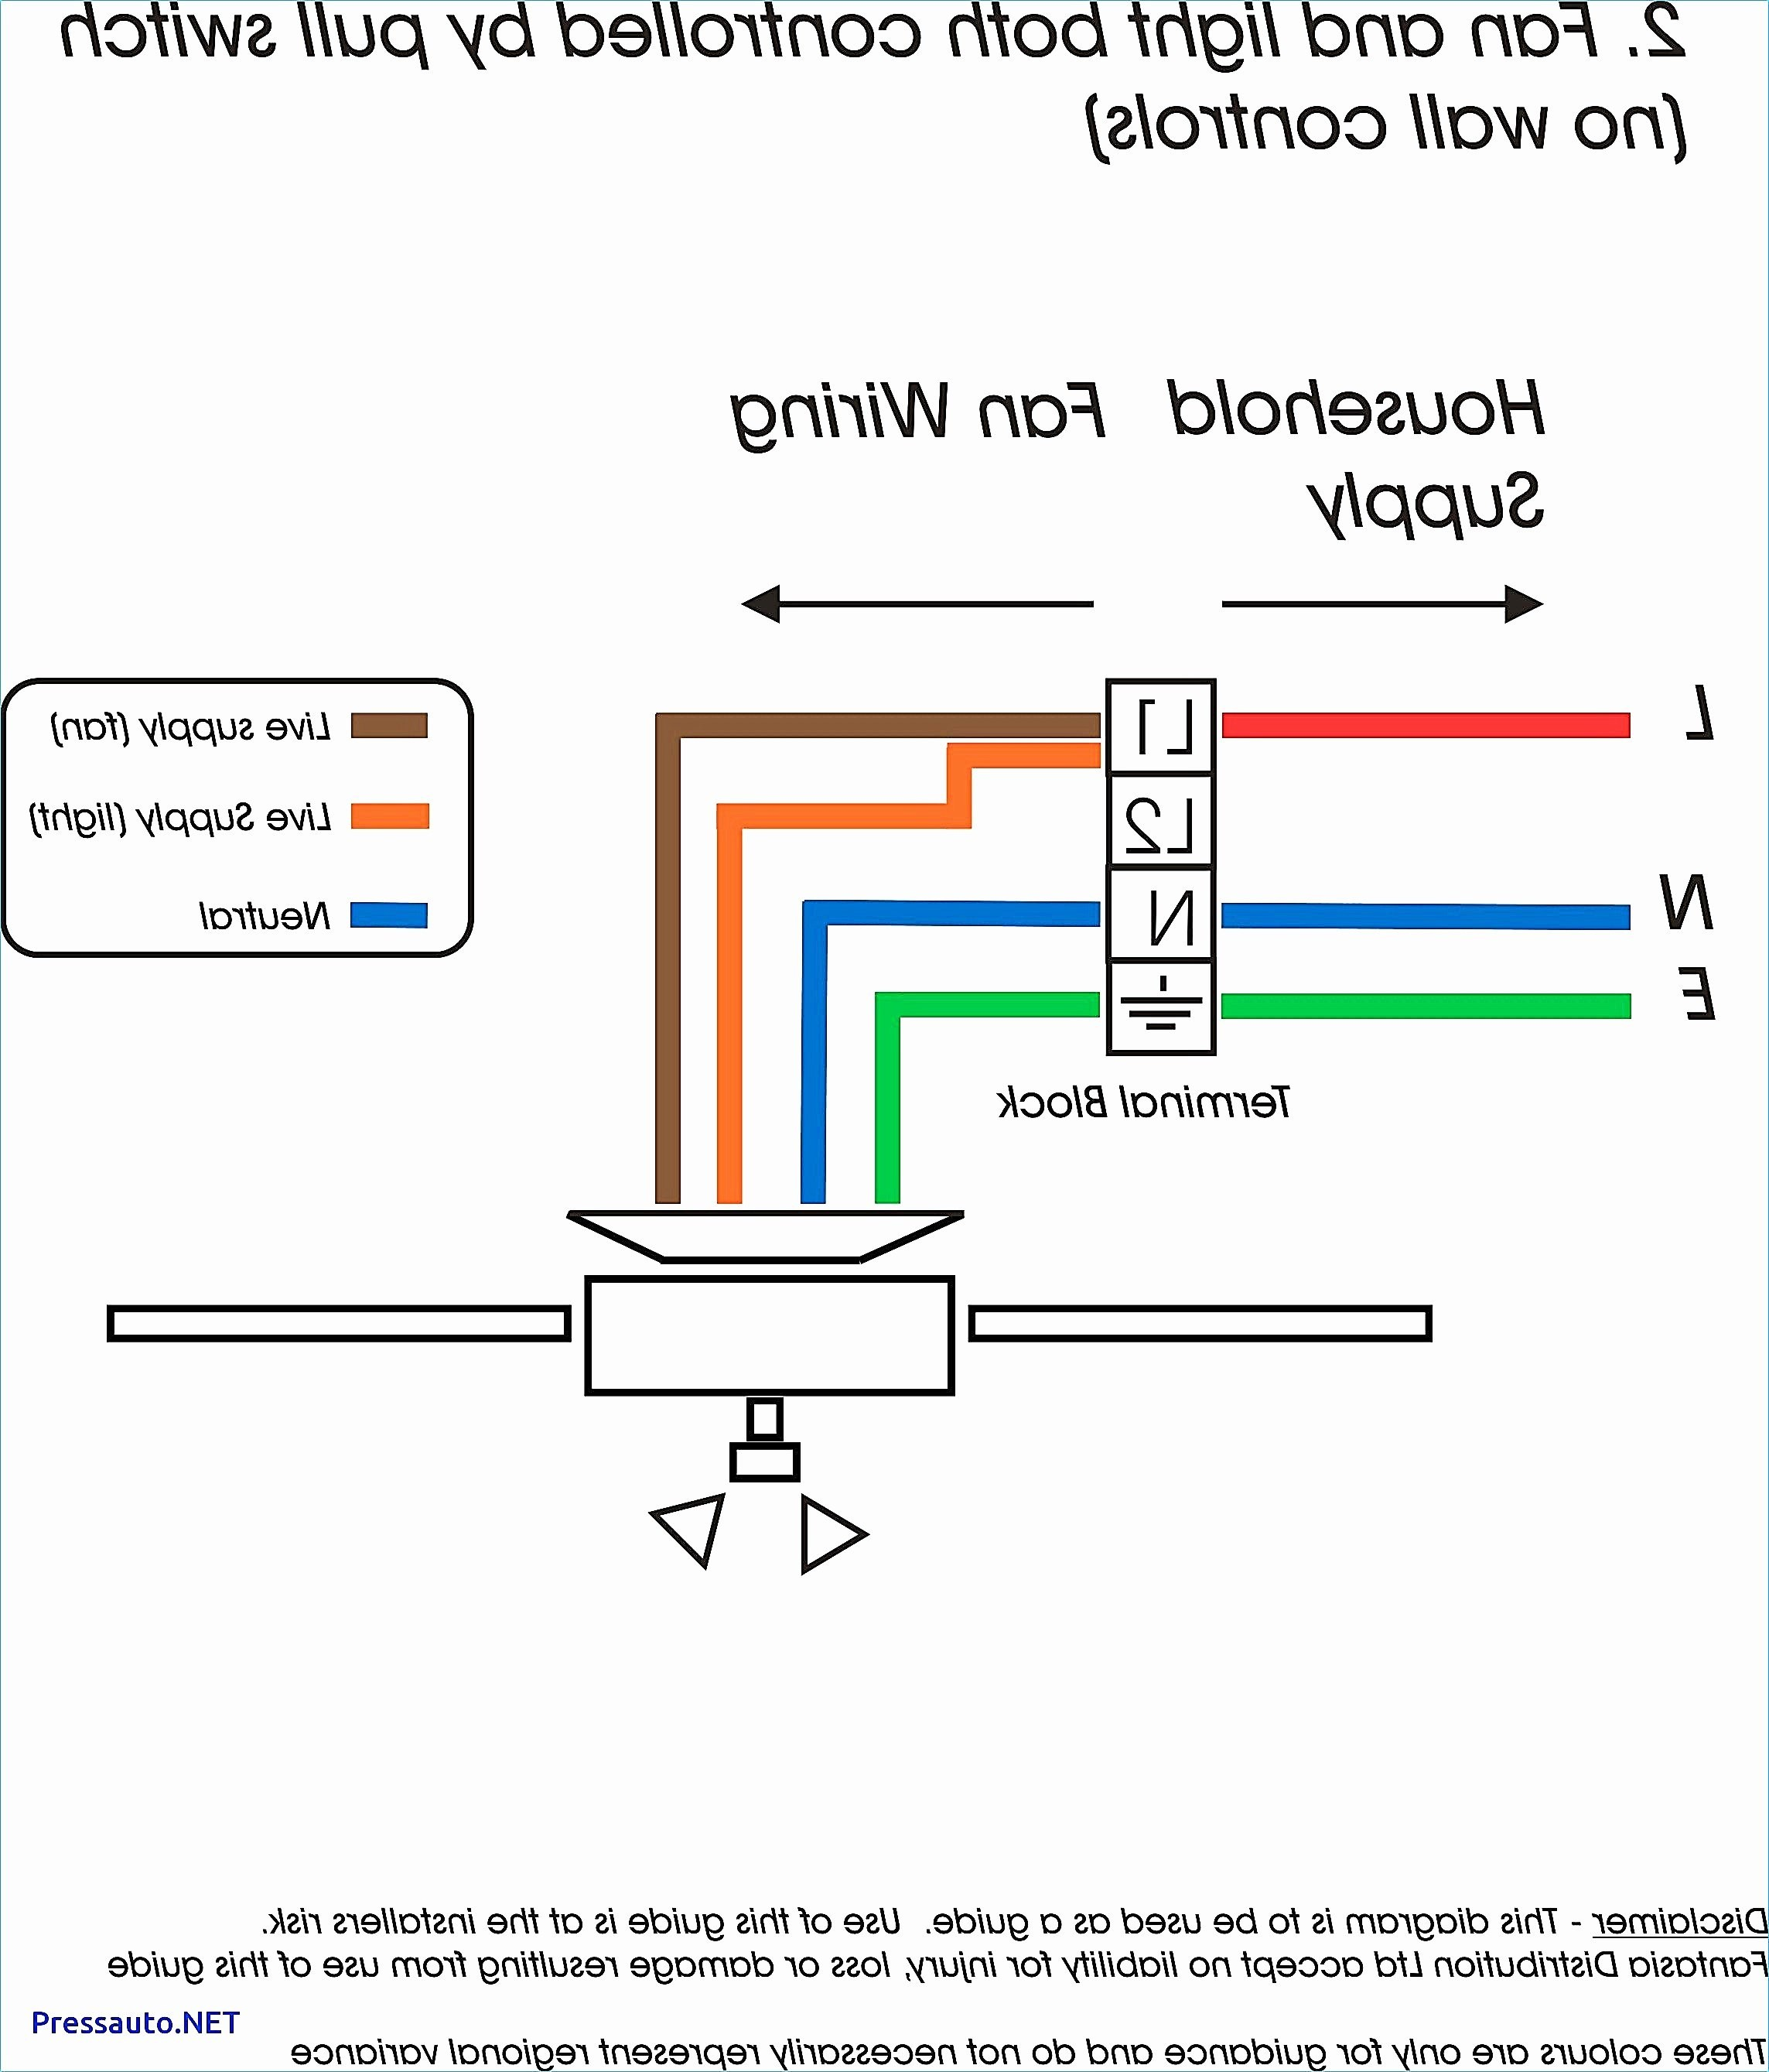 navigation light wiring diagram Collection Receptacle Wiring Diagram Examples Fresh Wiring A Light Switch and